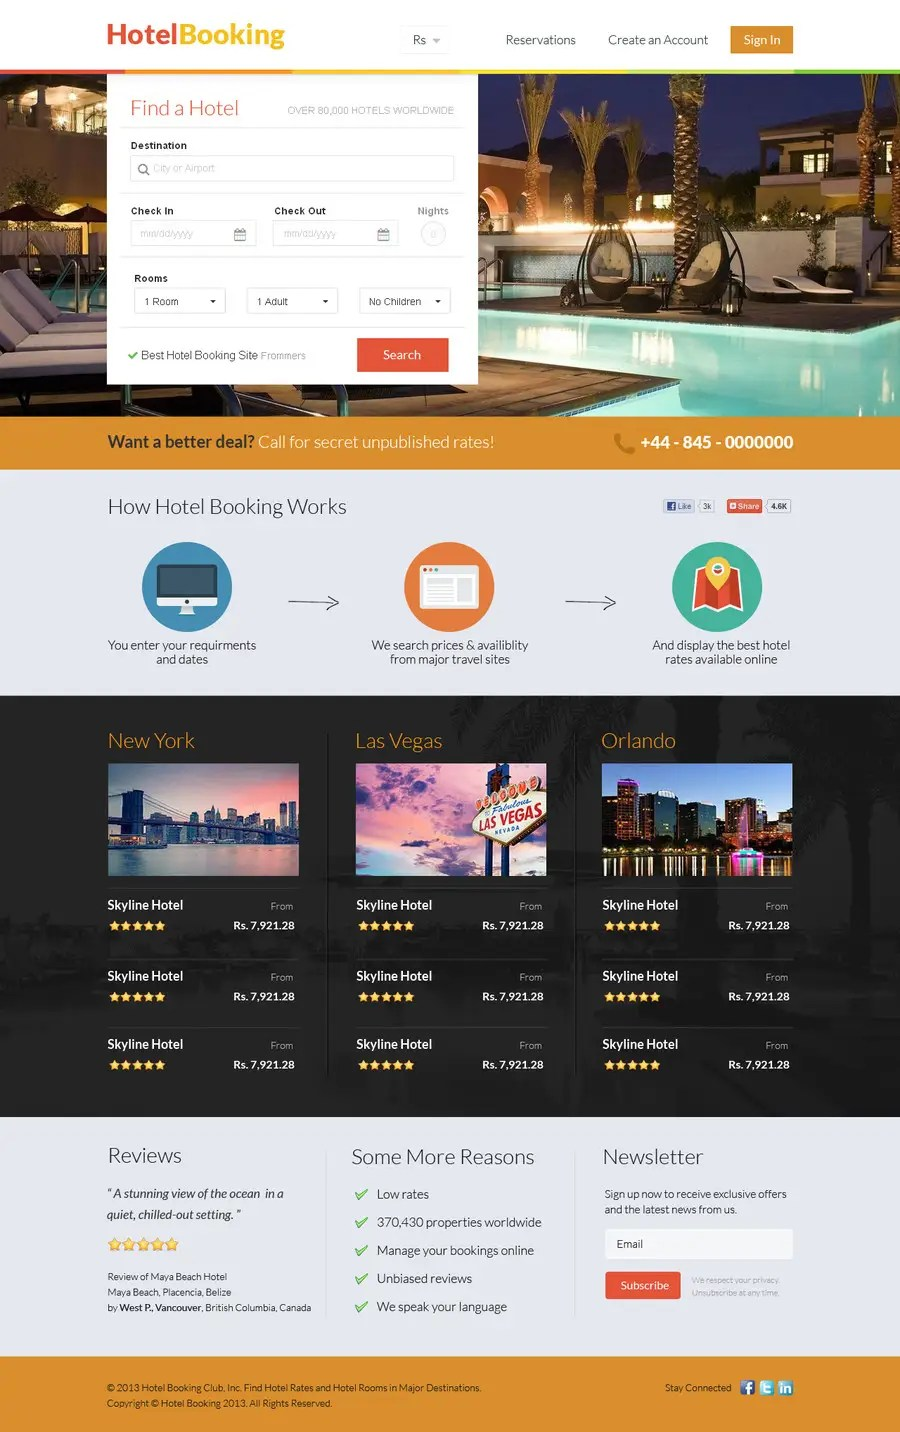 Booking Site Entry 22 By Uniqueclick For Hotel Booking Website Mockup Freelancer